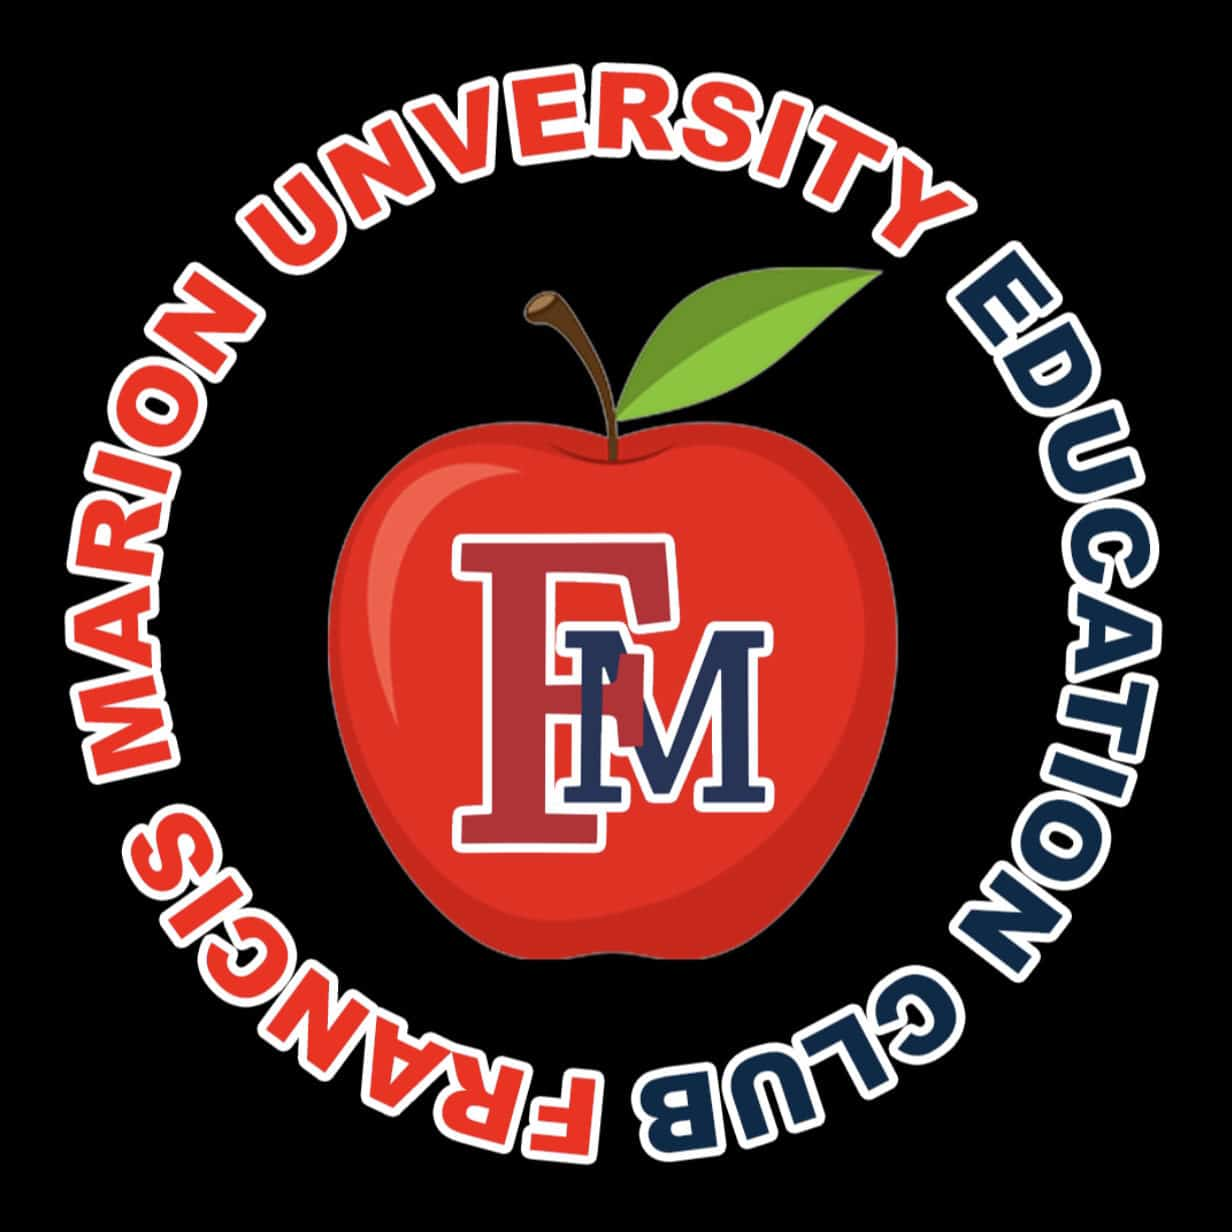 FMU Education Club Induction Ceremony